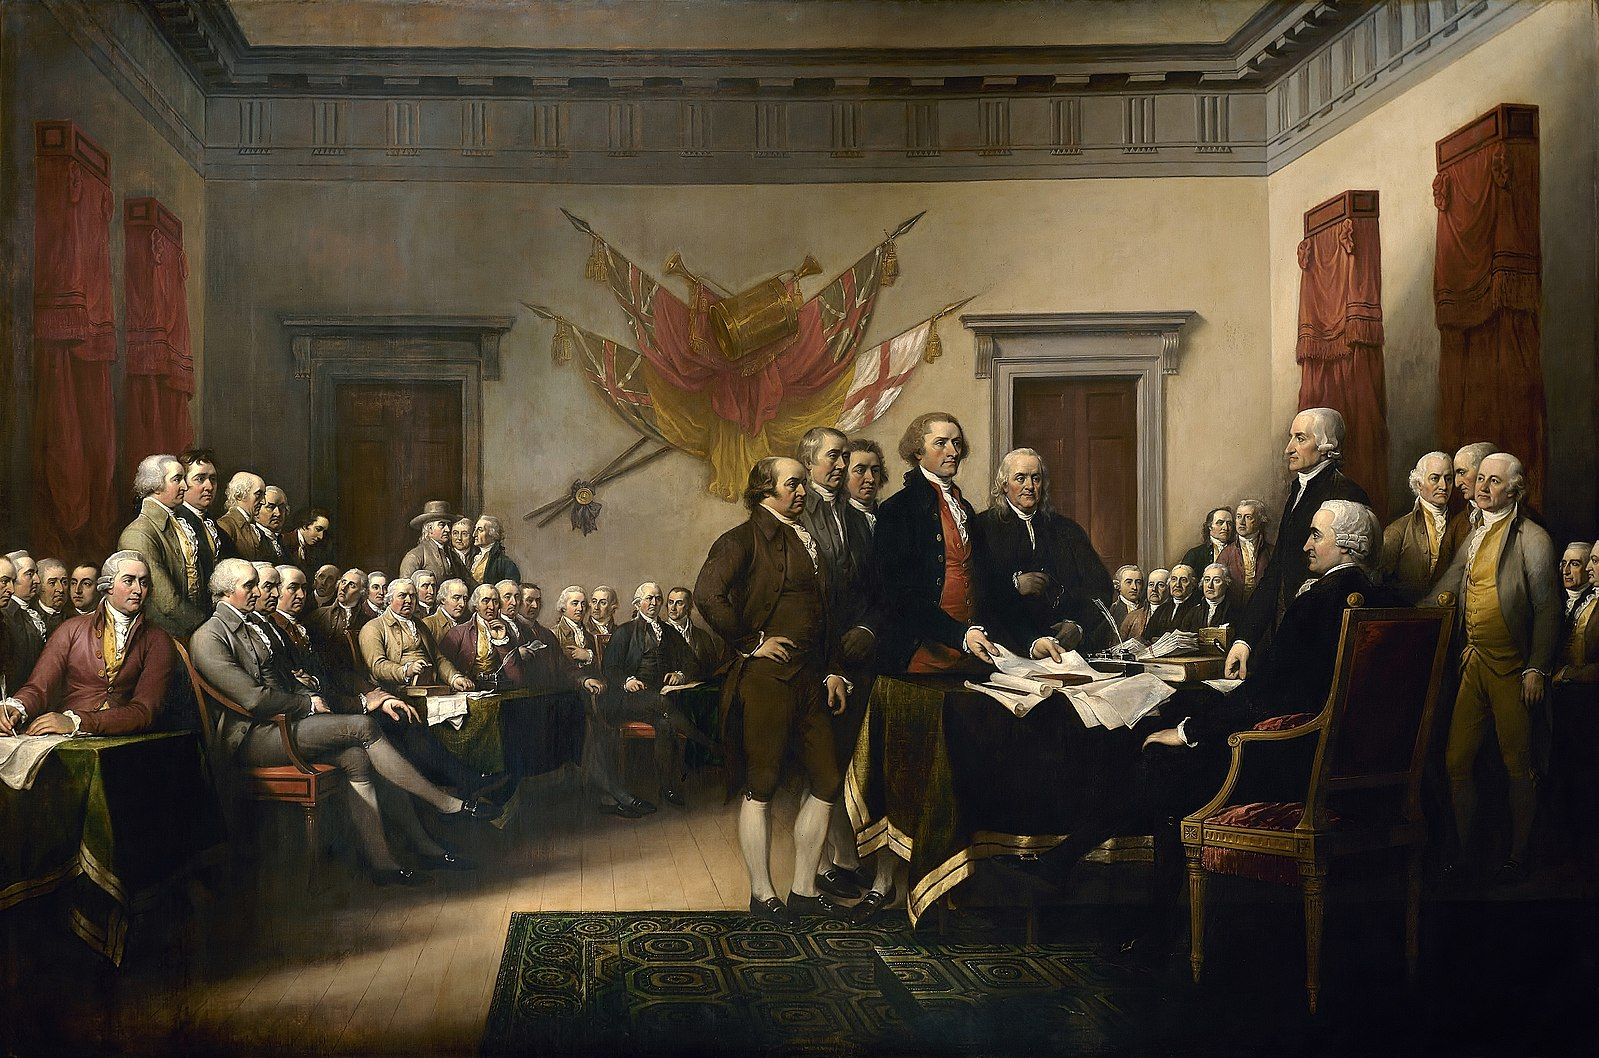 Declaration of Independence, John Trumbull